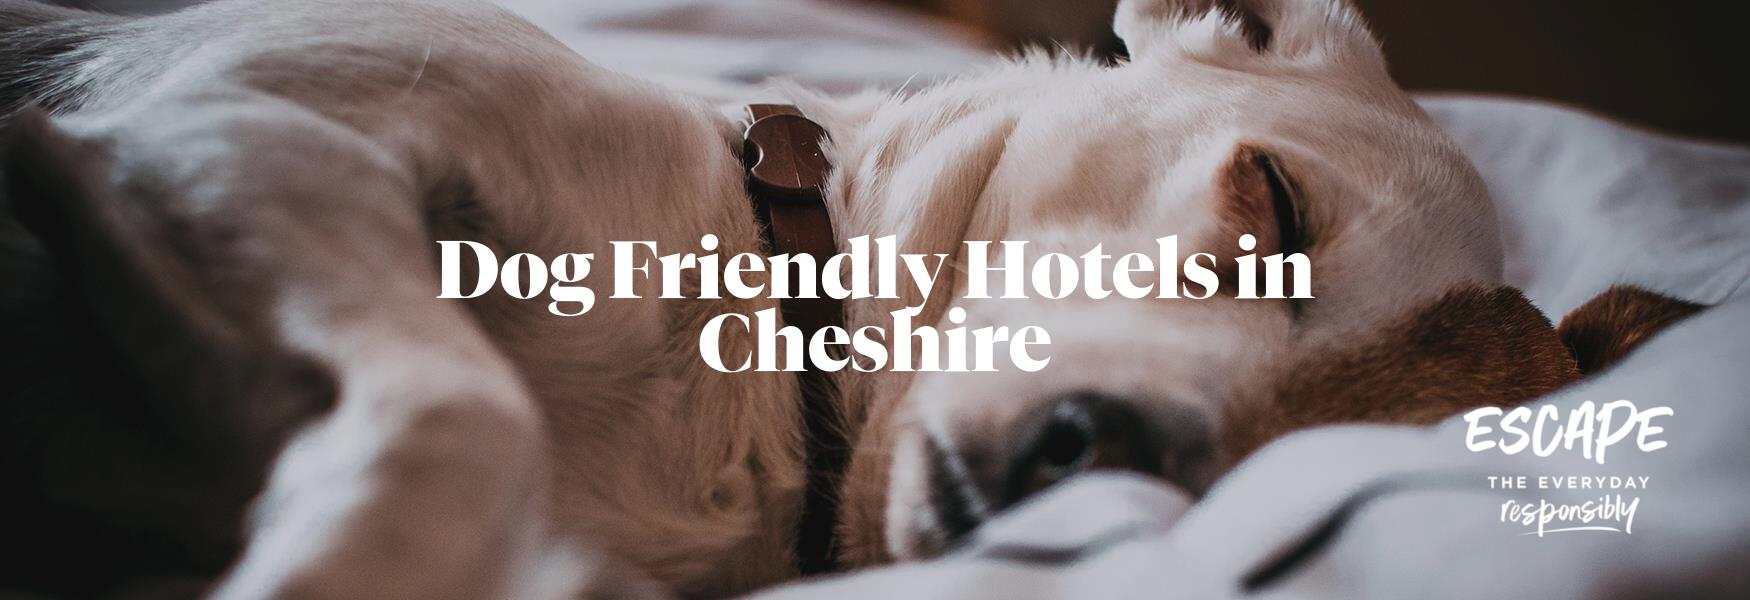 Dog Friendly hotels in Cheshire